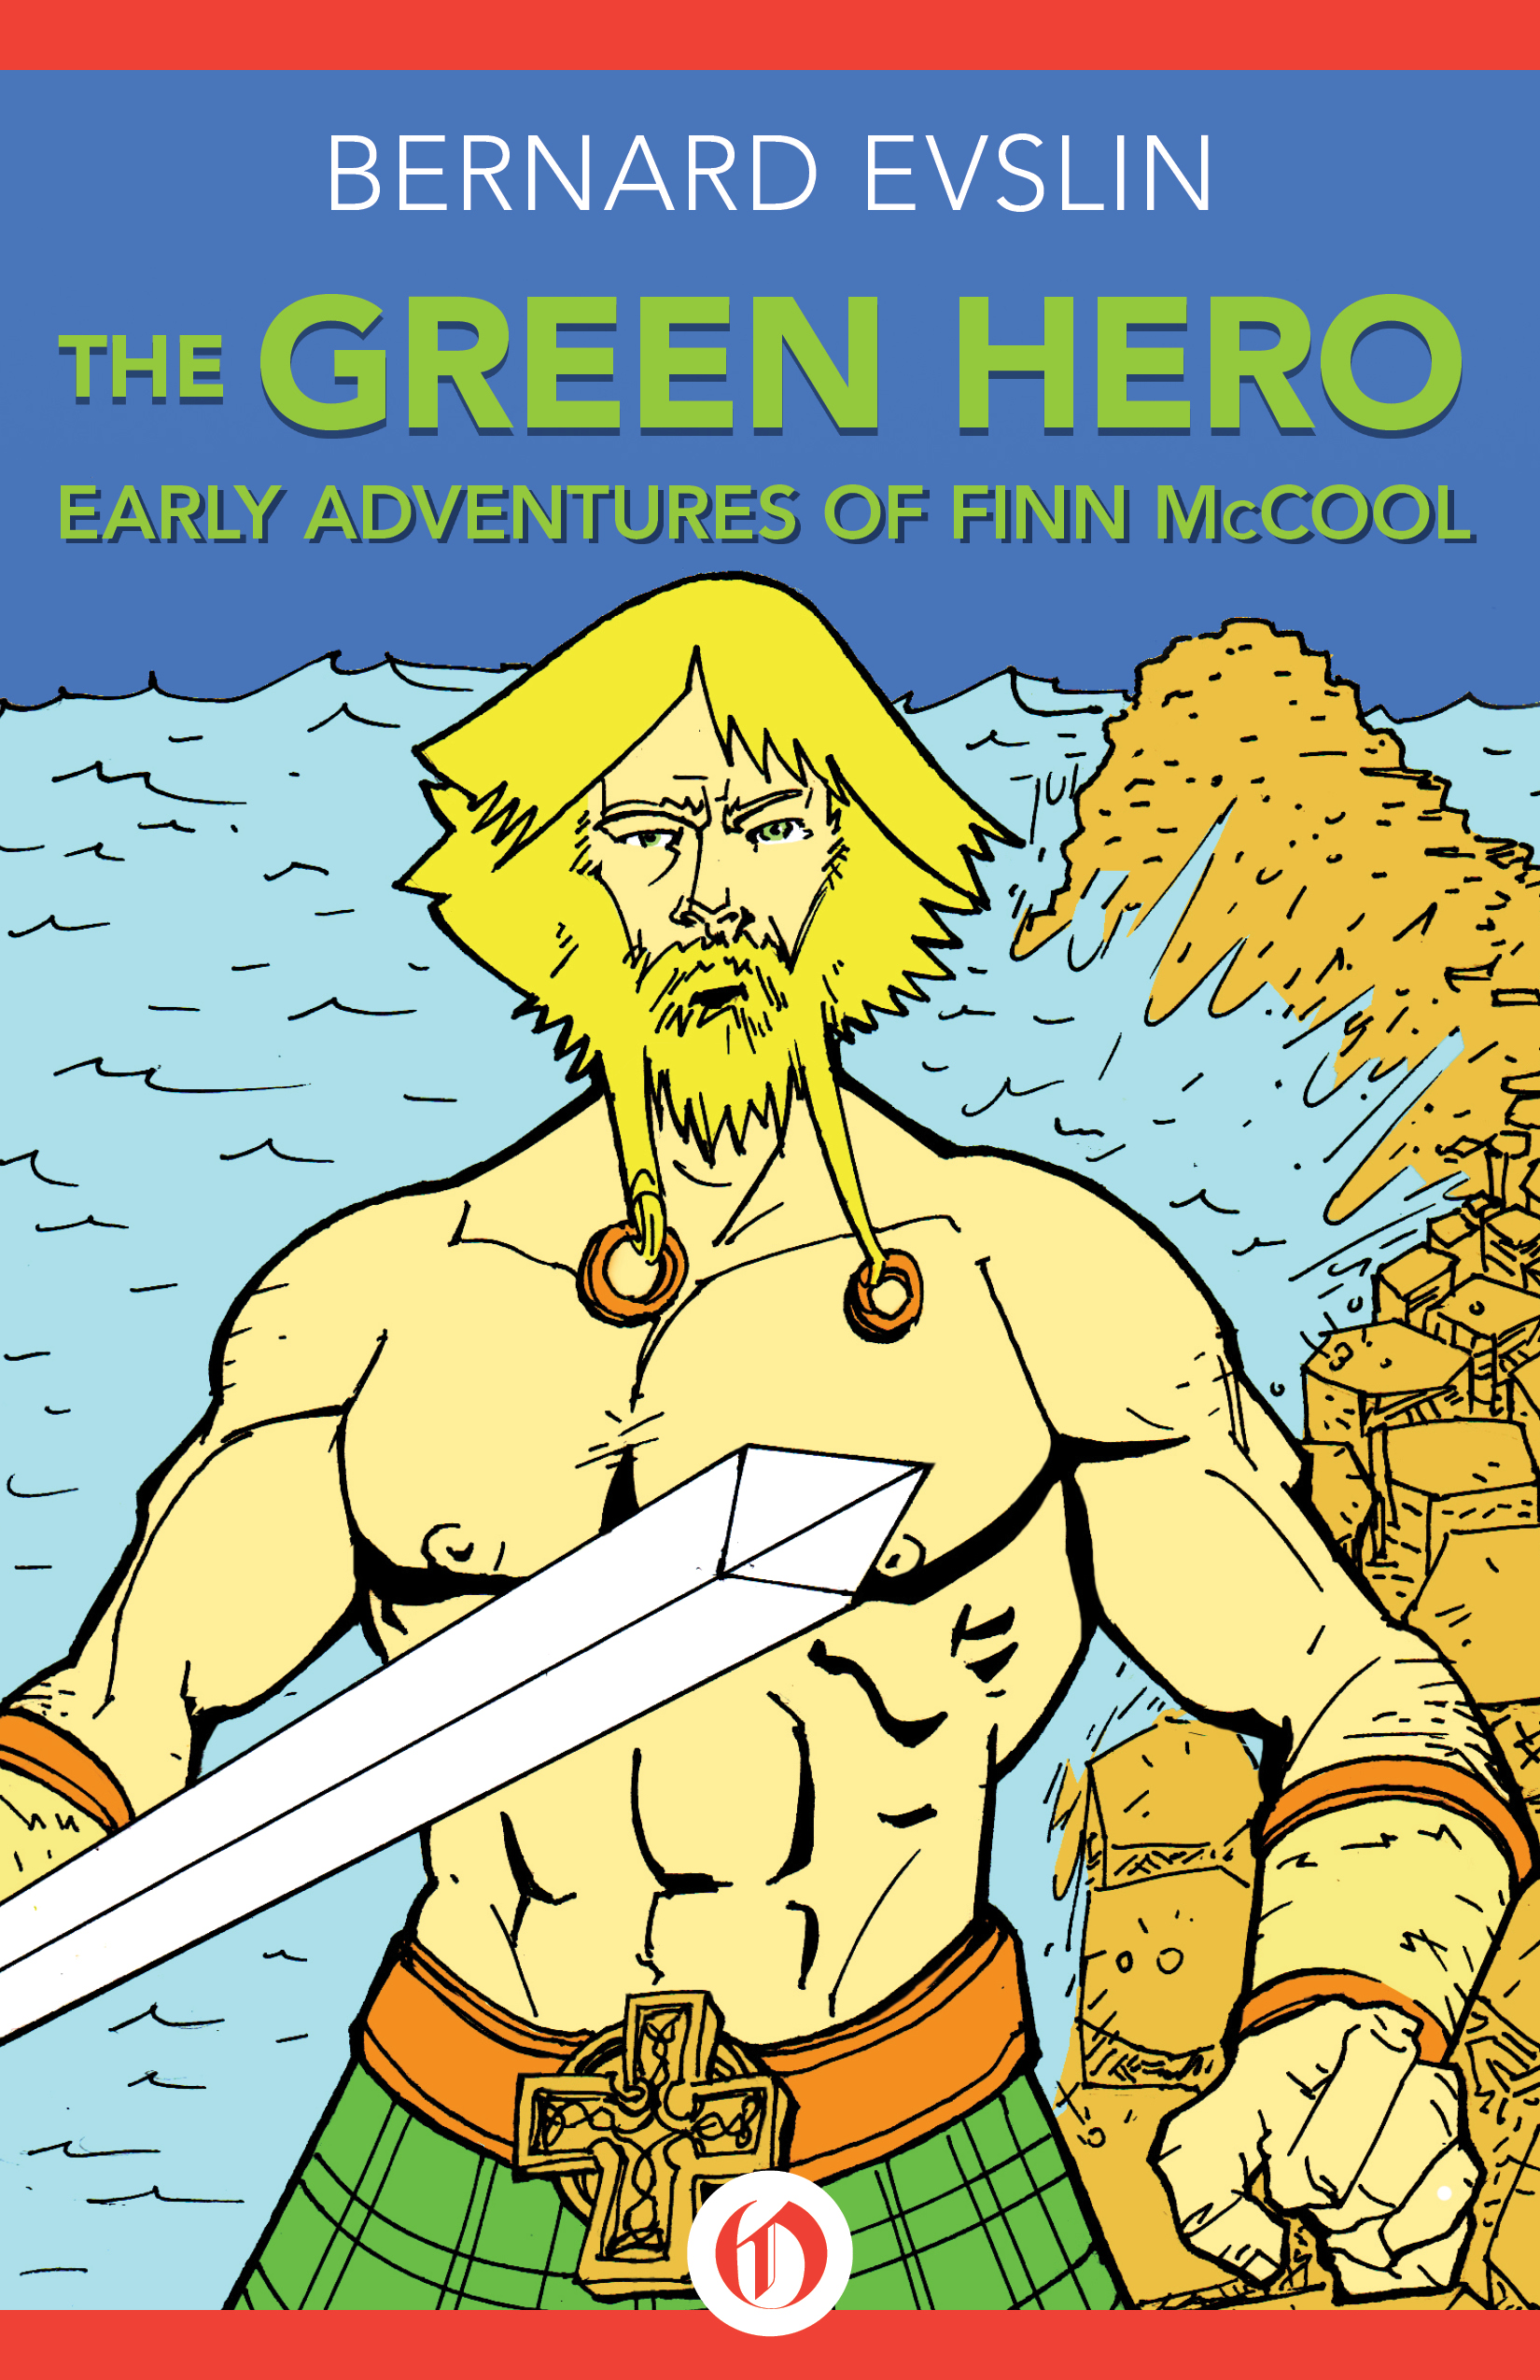 The Green Hero: Early Adventures of Finn McCool